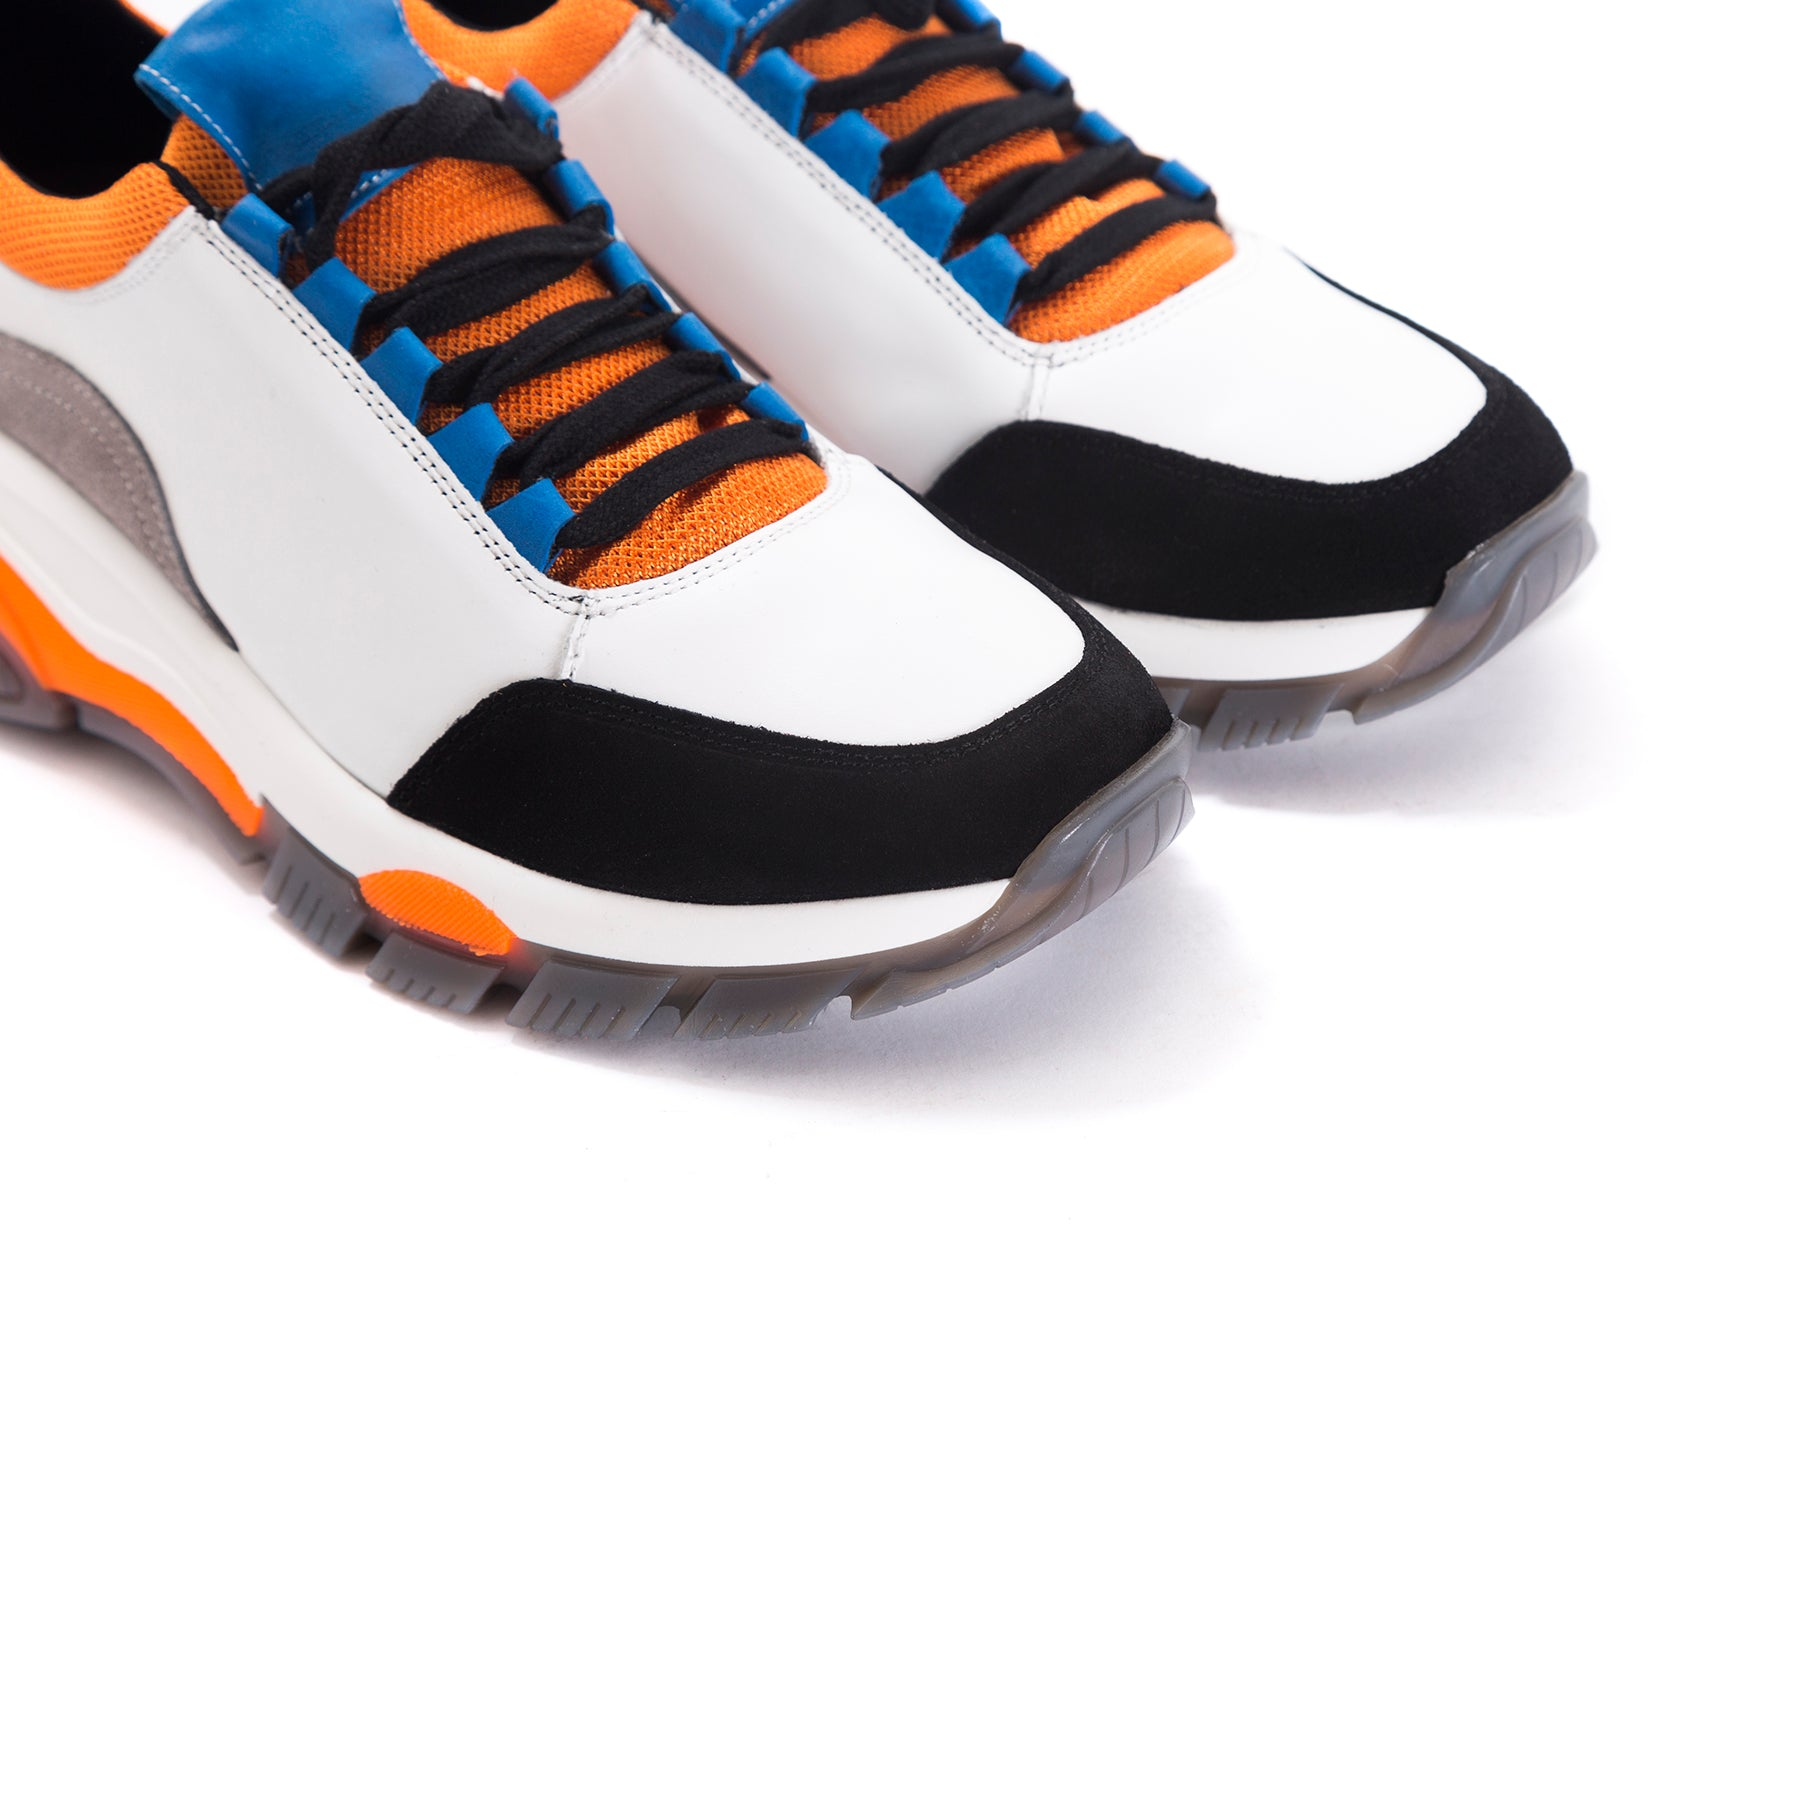 Dafodil Orange Multi Sneakers